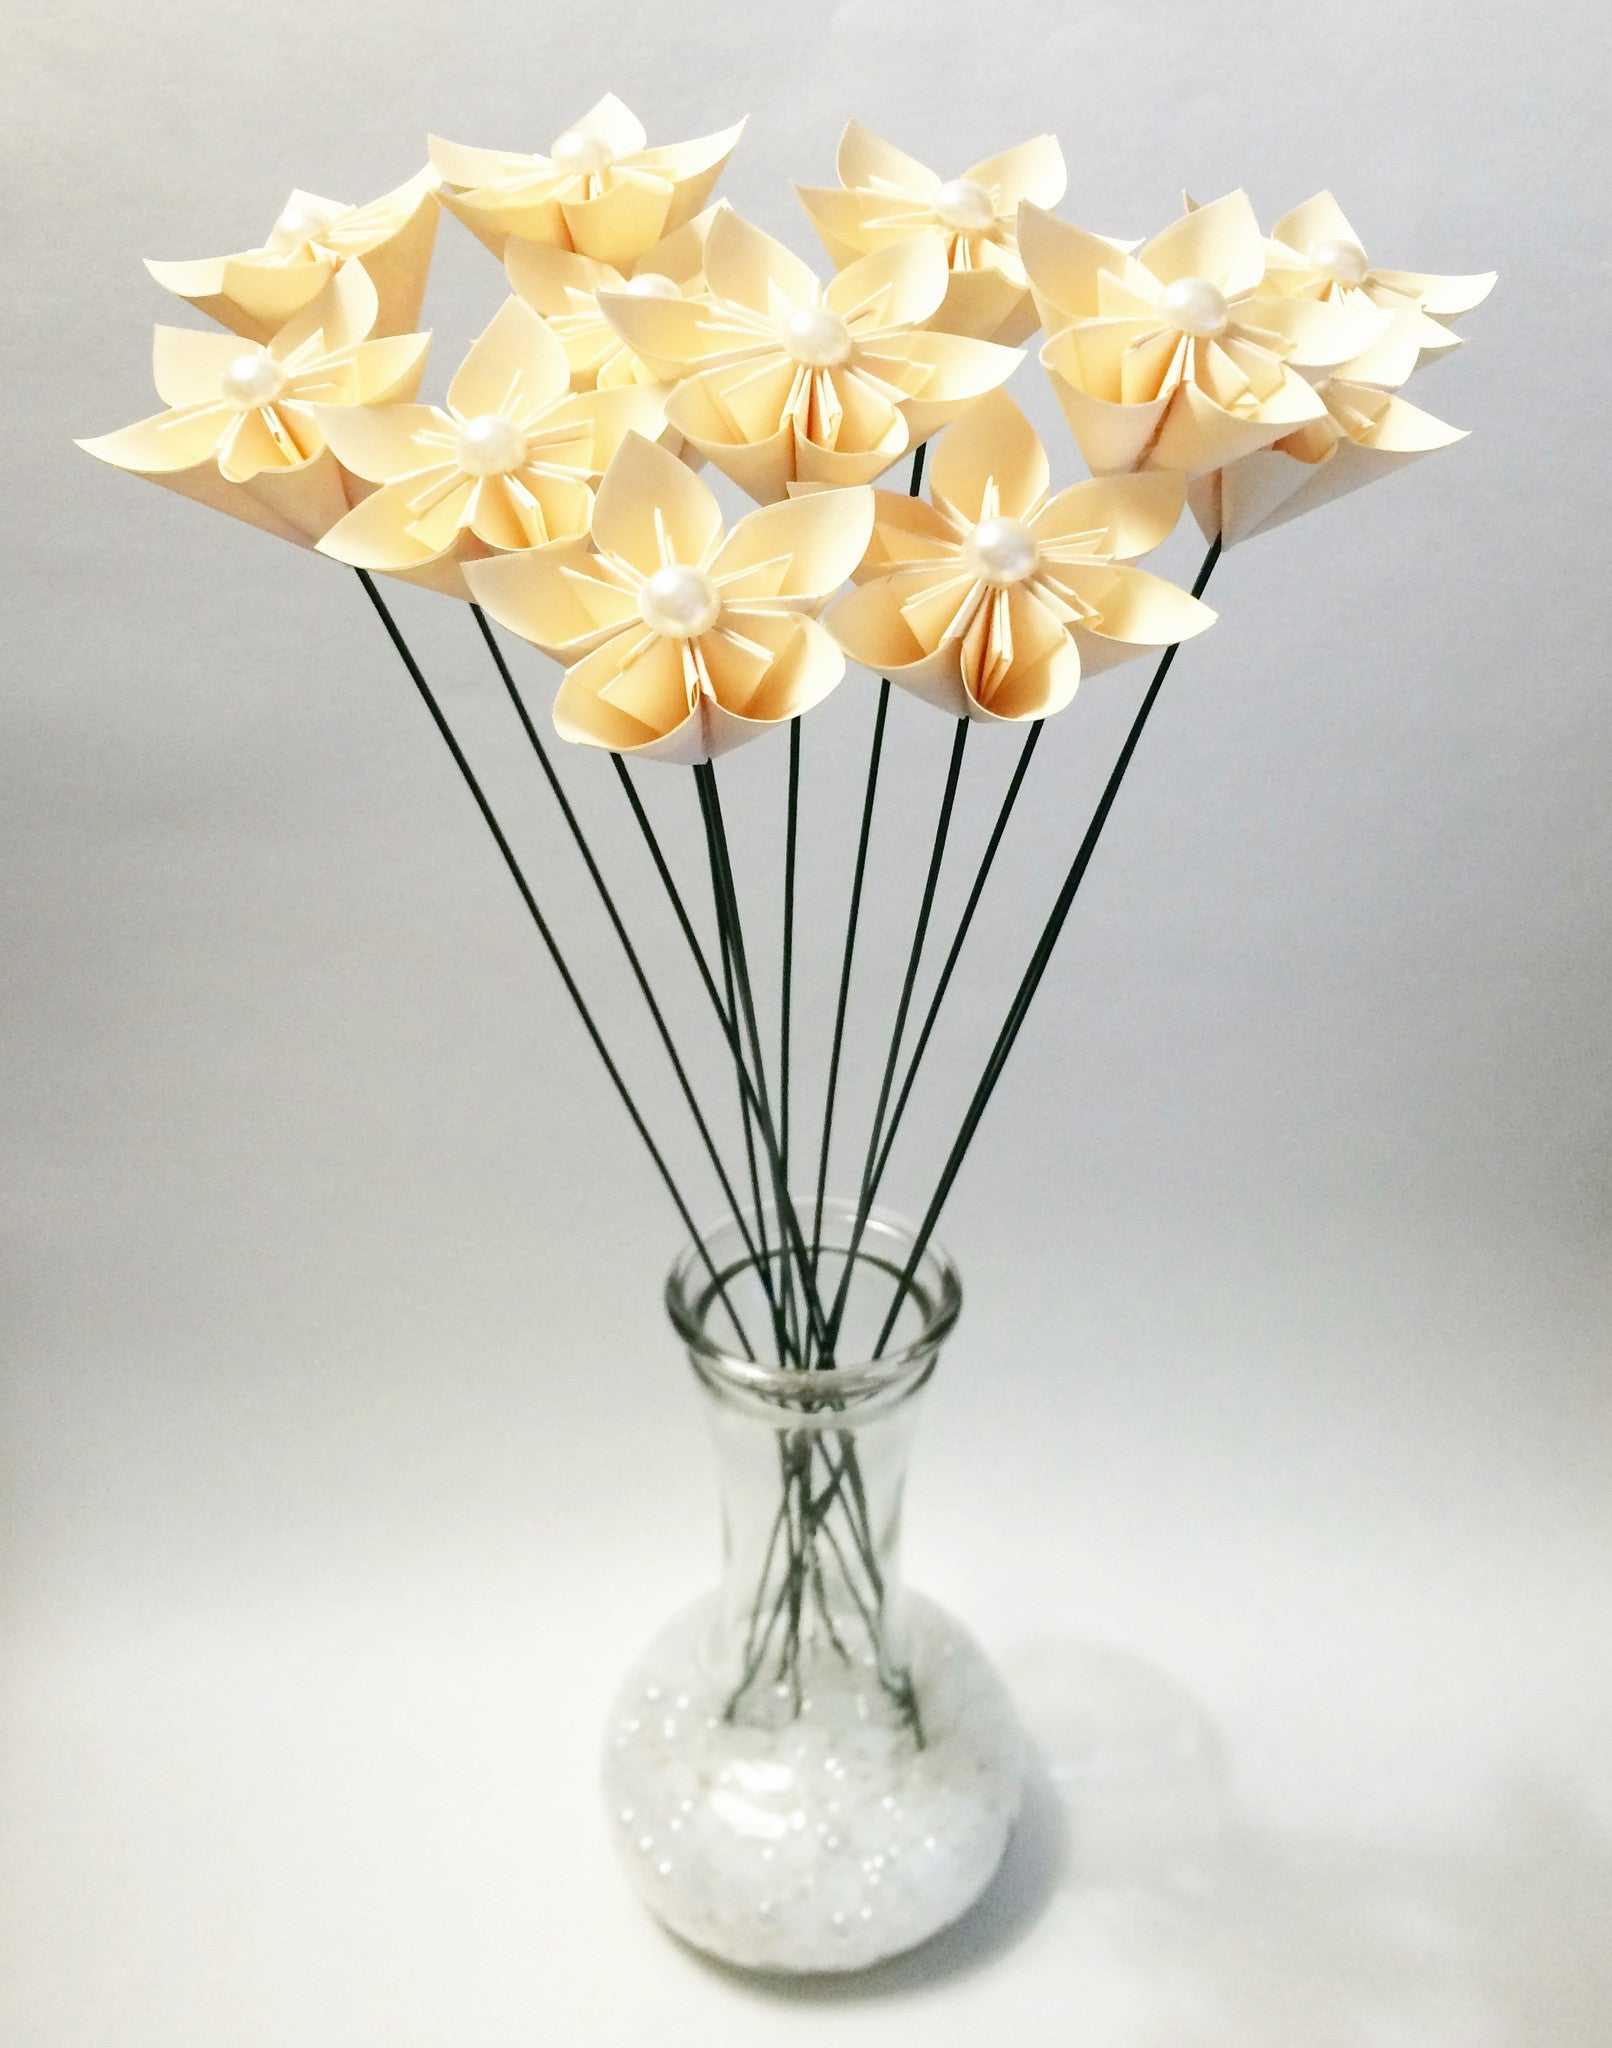 12 Stemmed Paper Flowers- traditional origami, choose your color, wedding decor, anniversary gift, small bouquet